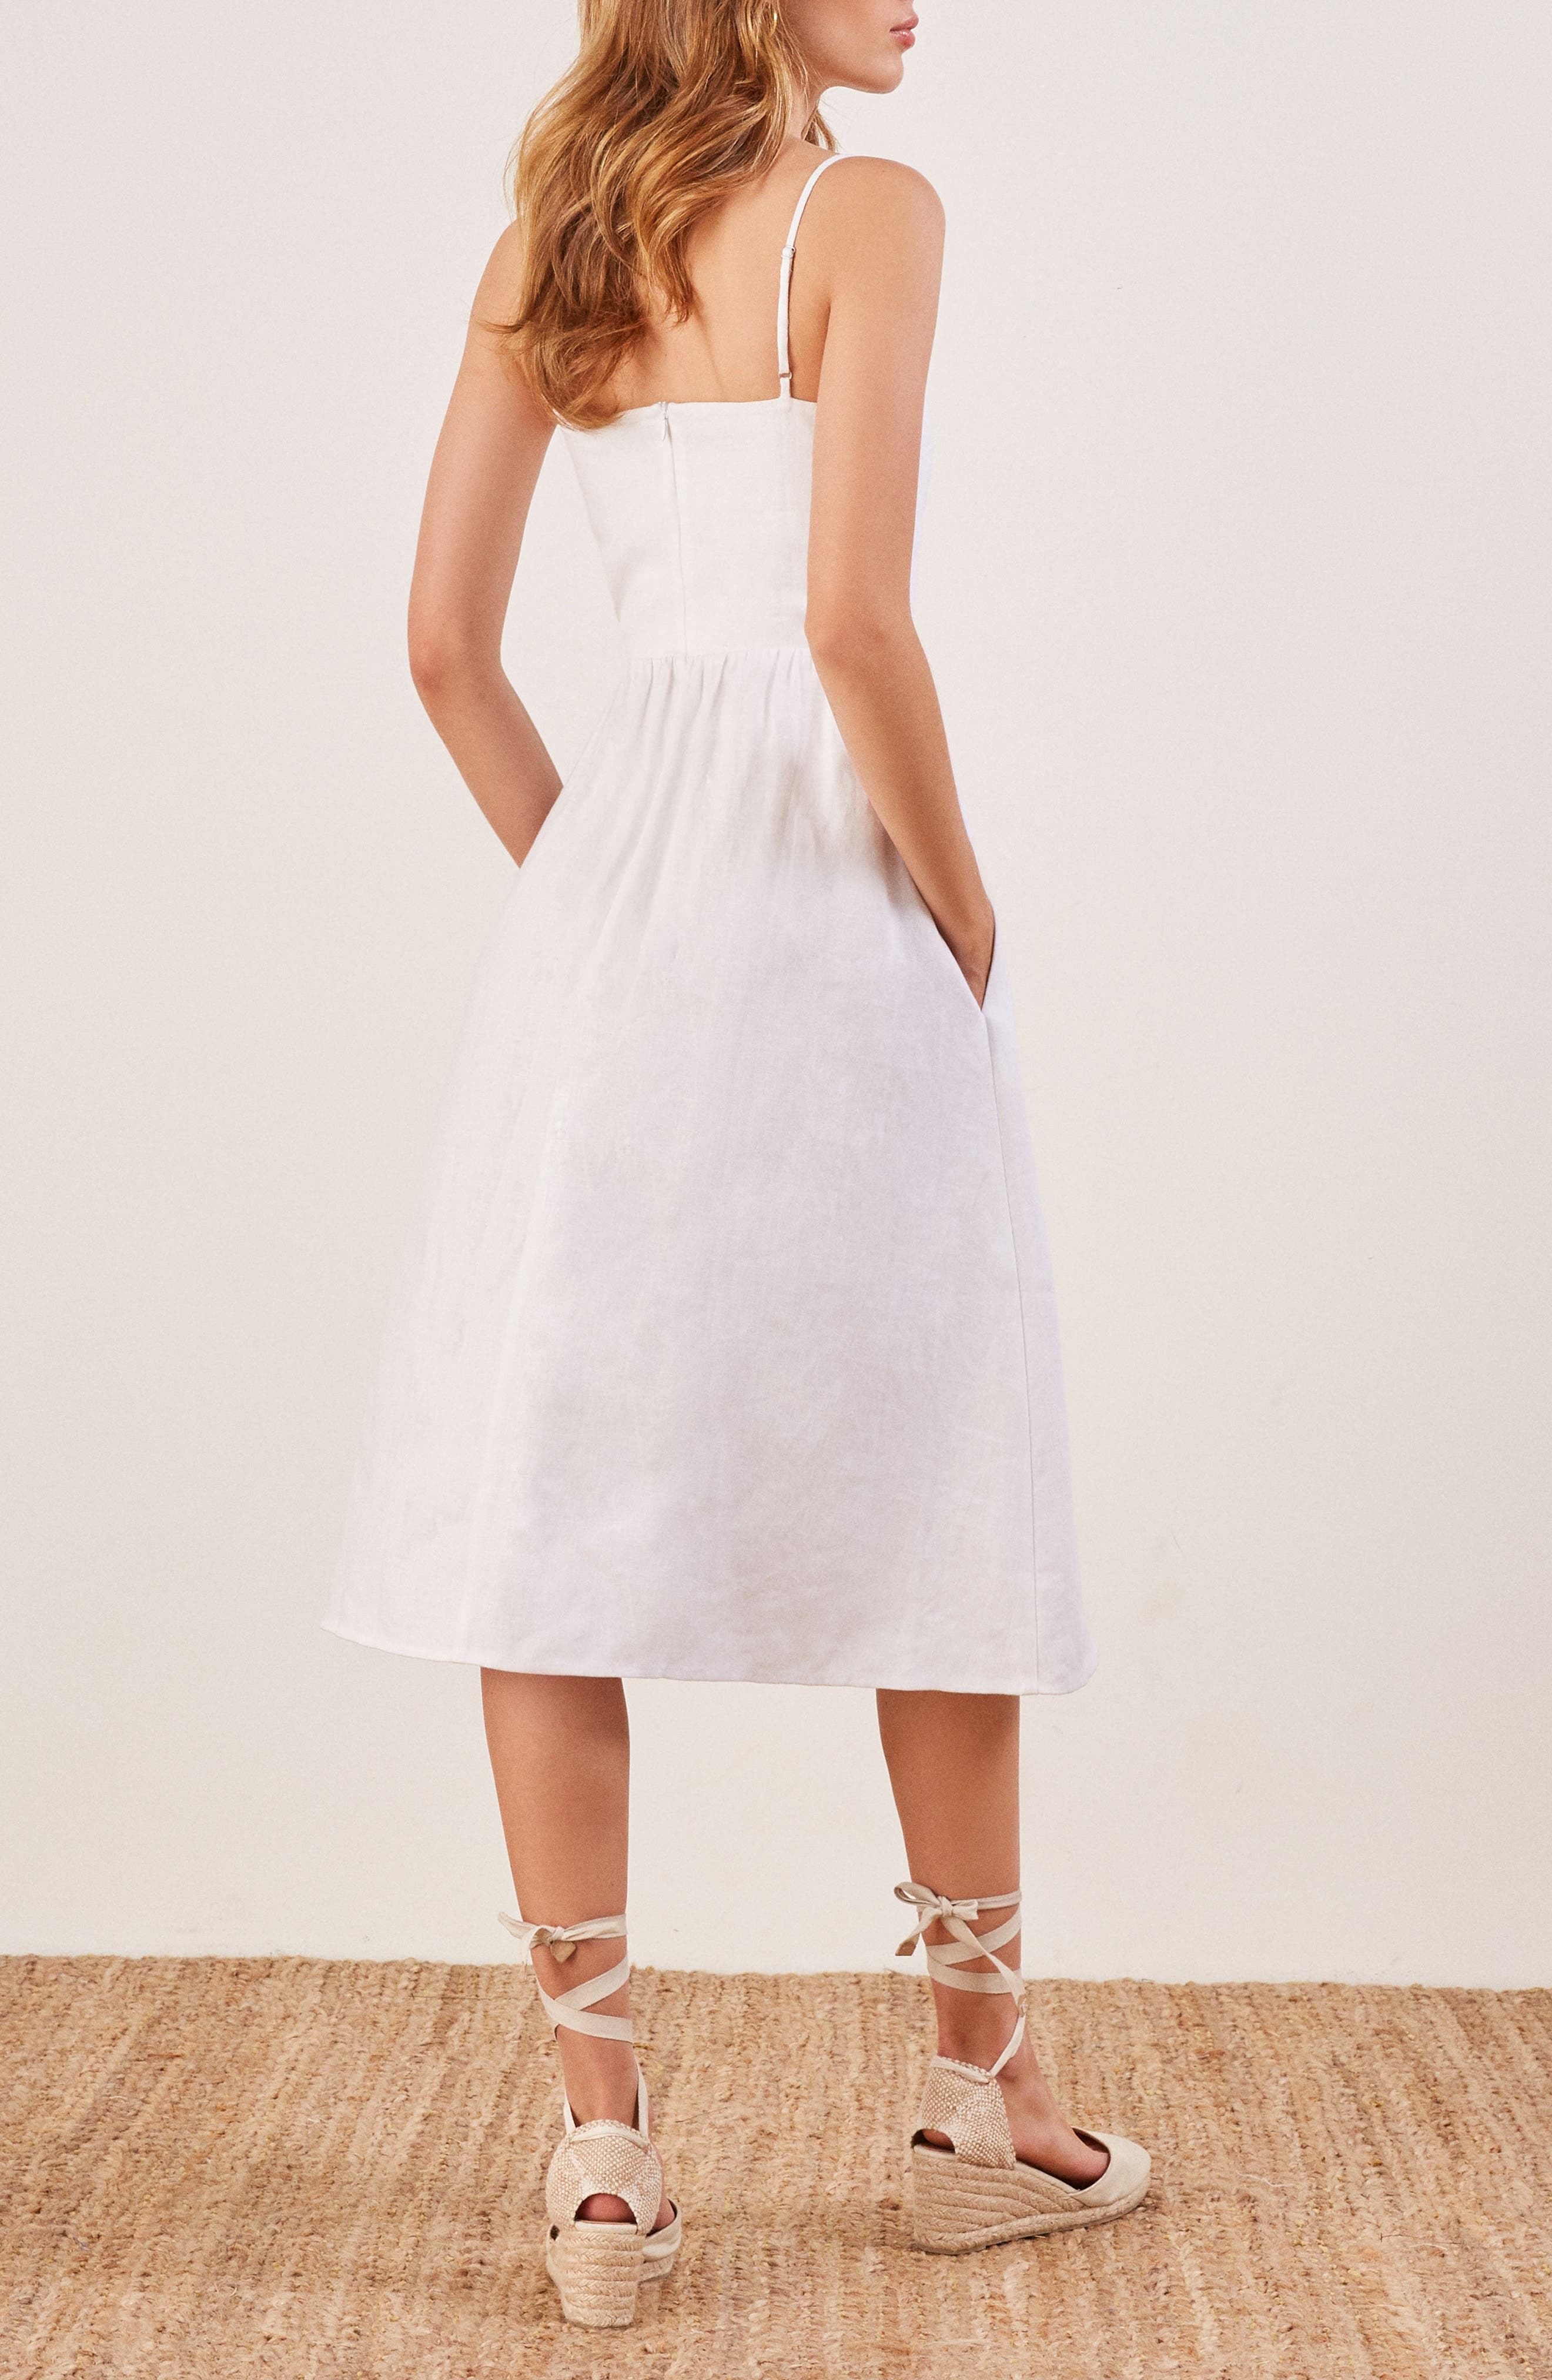 Olivia Linen Midi Dress,                             Alternate thumbnail 3, color,                             100